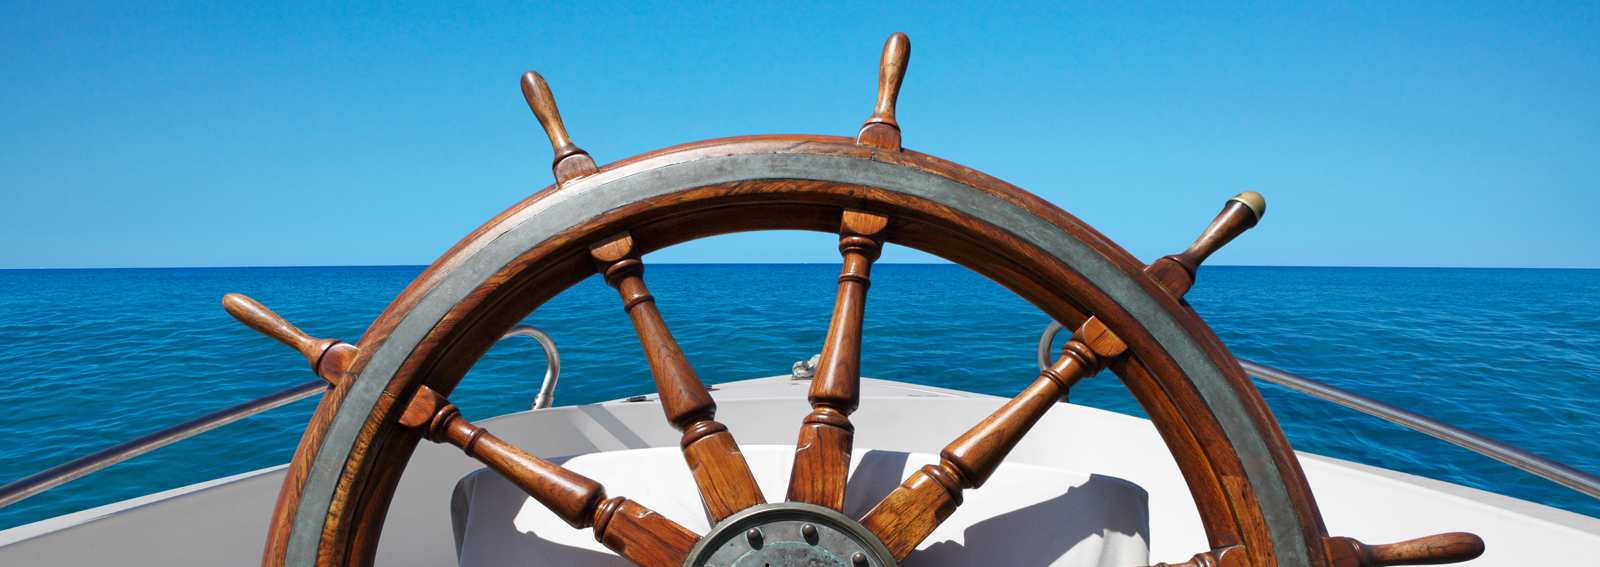 helm of a ship